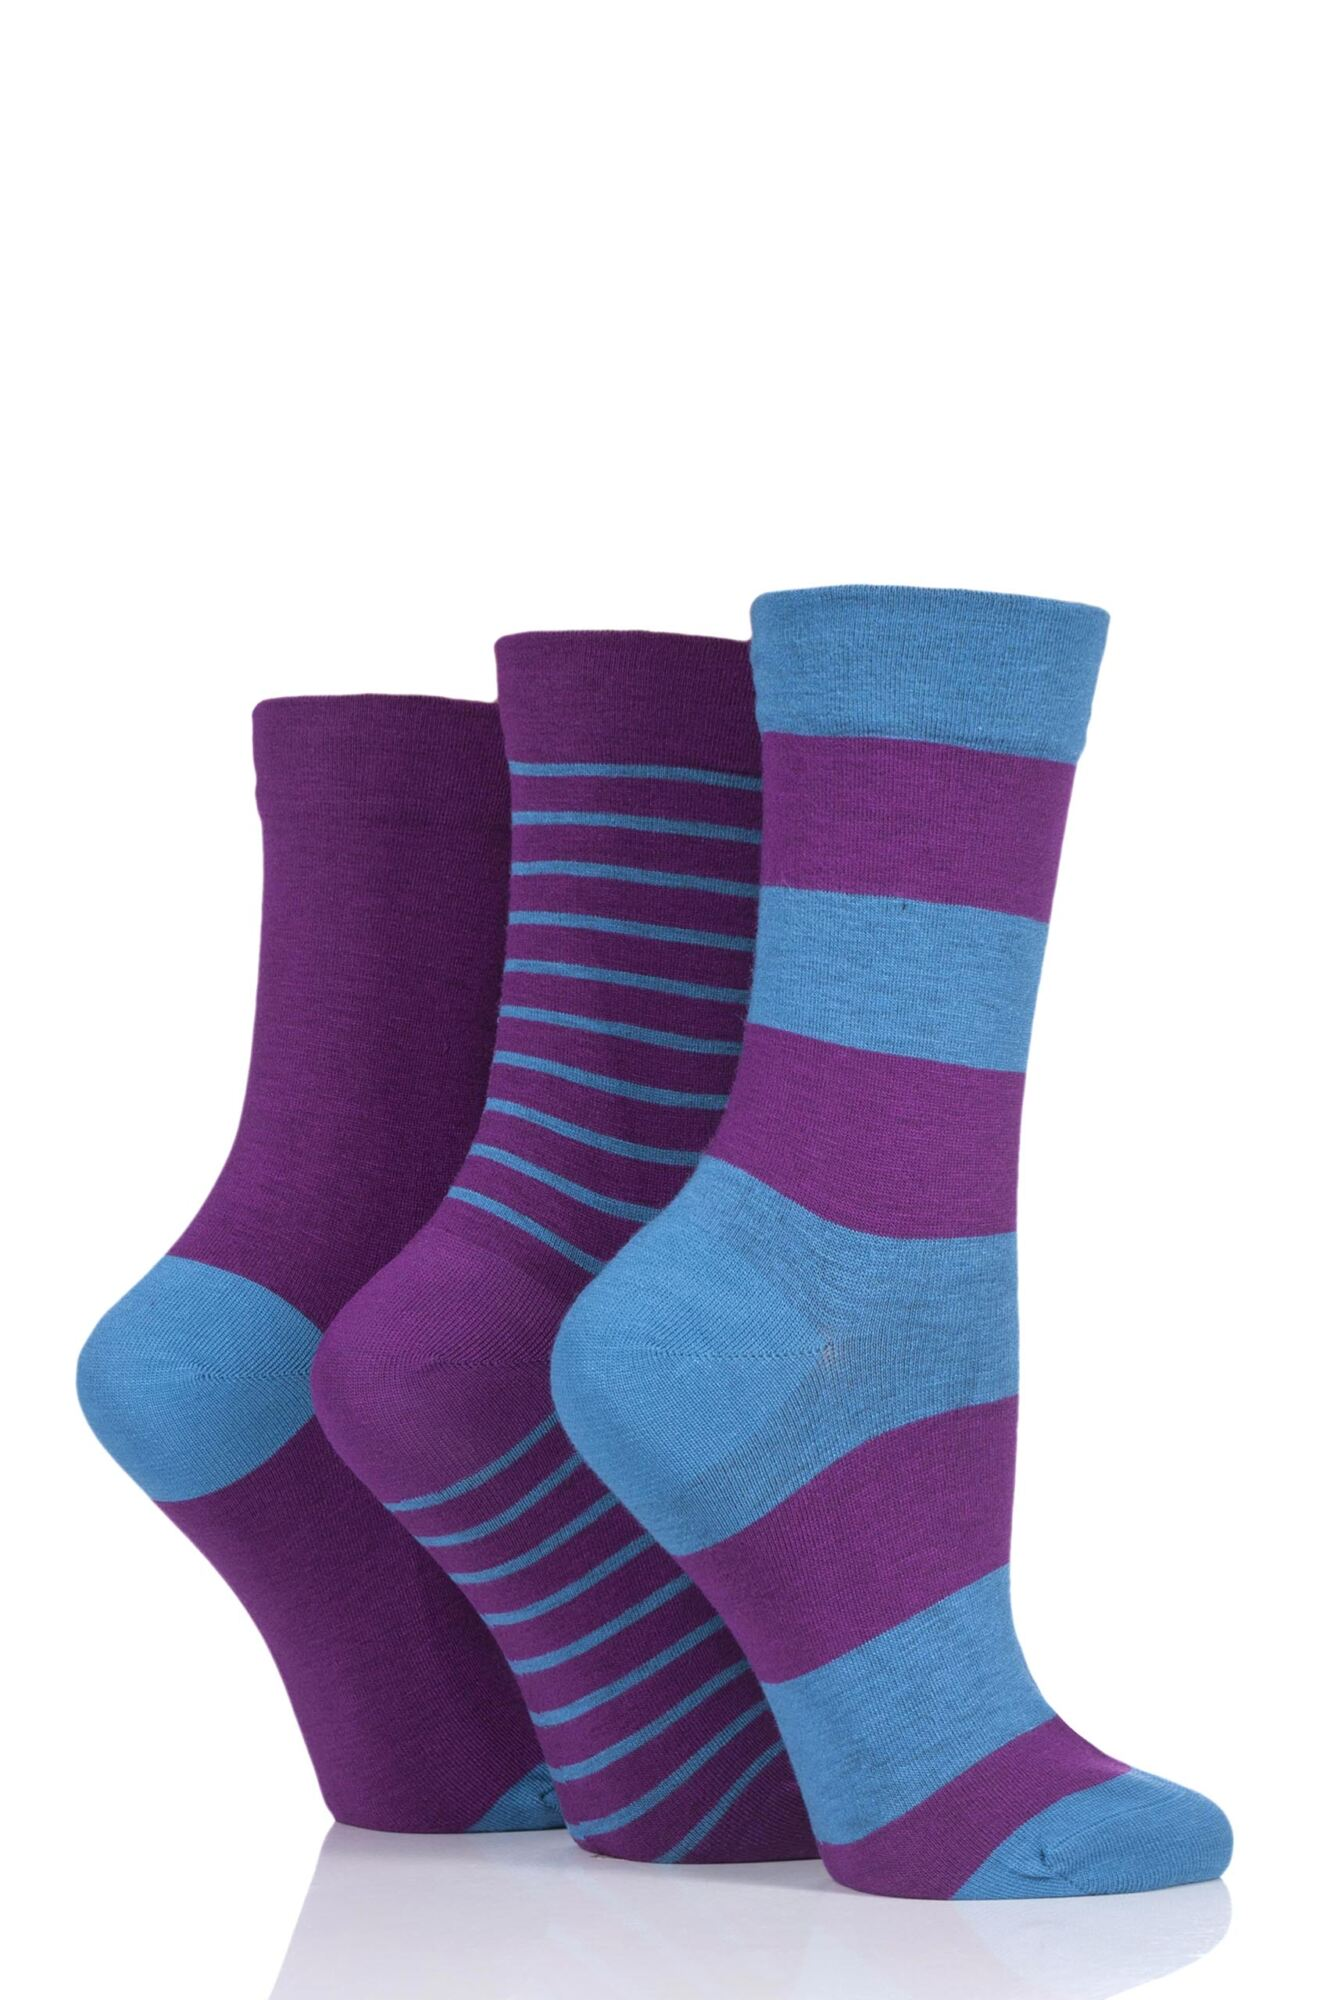 3 Pair Gentle Bamboo Socks with Smooth Toe Seams in Plains and Stripes Ladies - SOCKSHOP